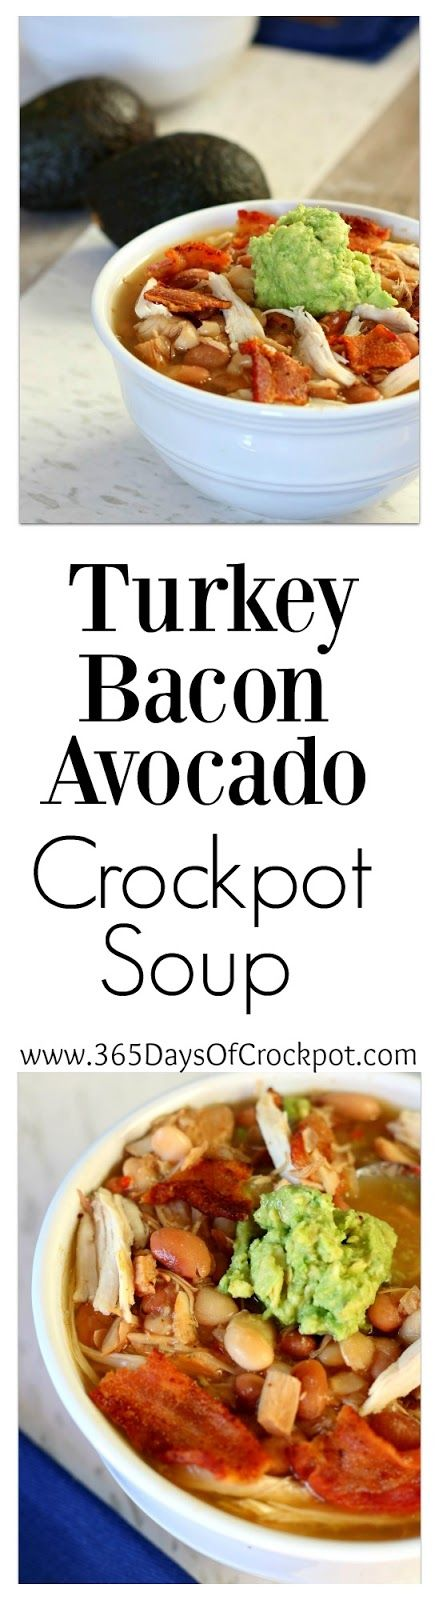 soup on Pinterest | Bacon soup, Barley soup and Baked potato soup